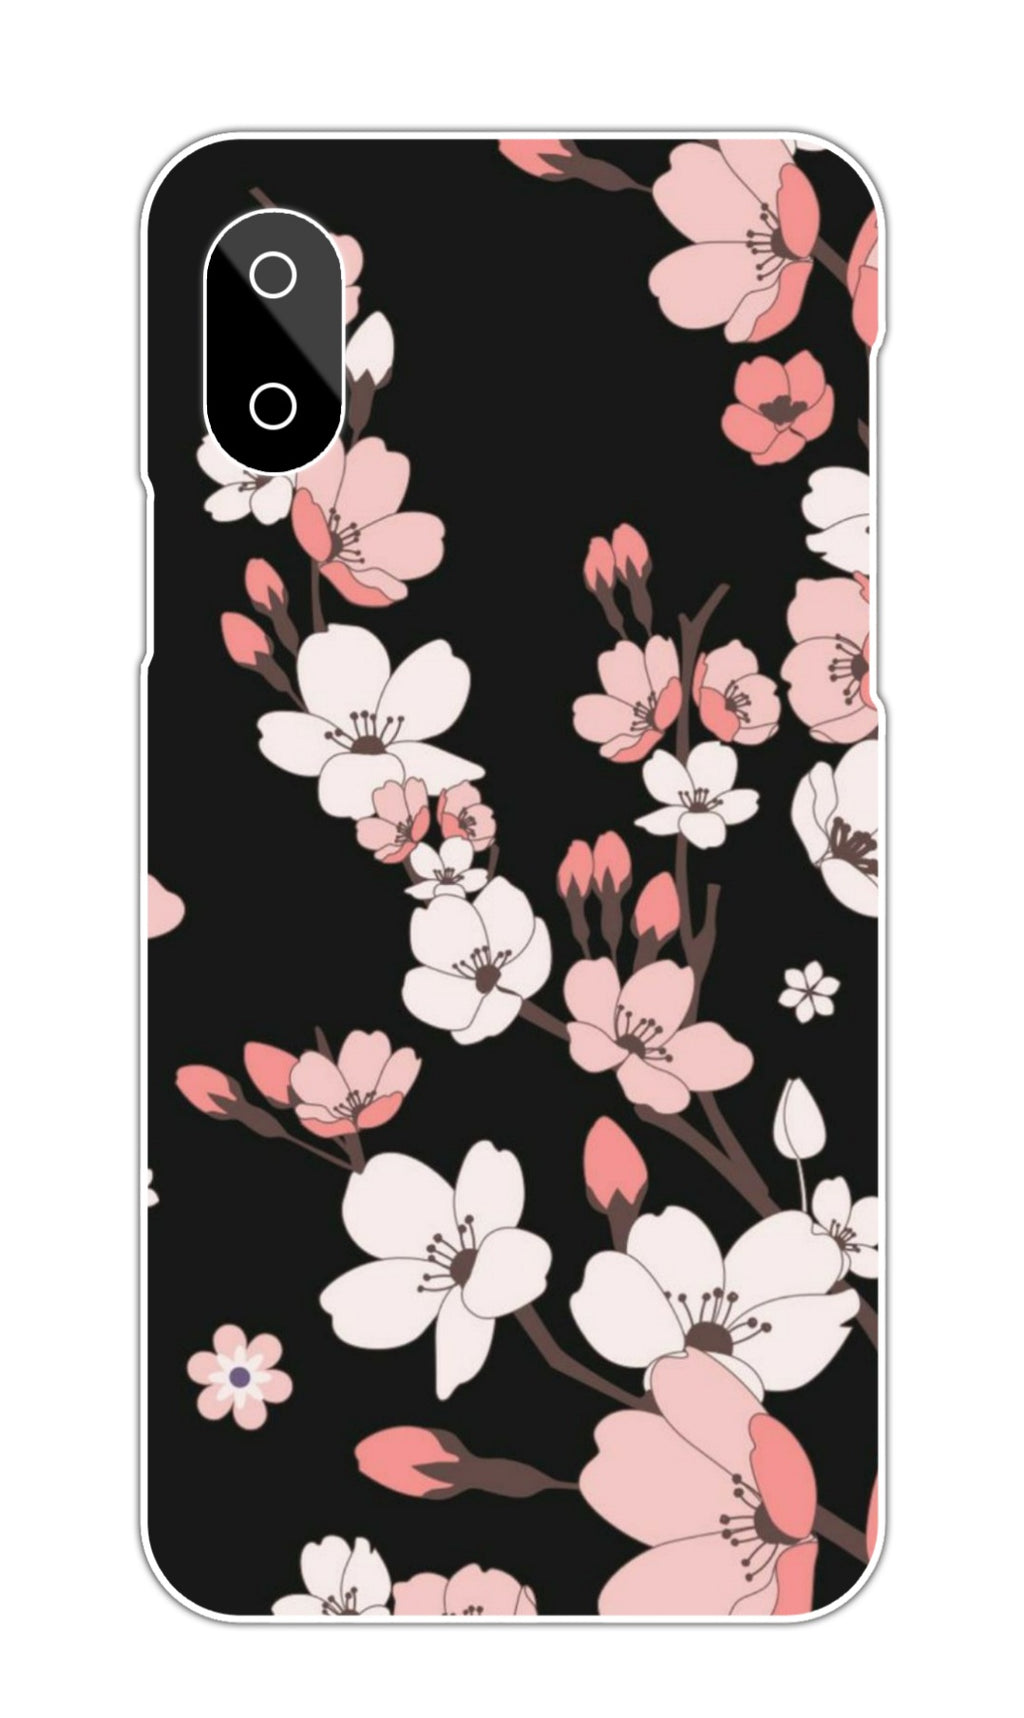 BLACK BACKGROUND FLORAL CASE